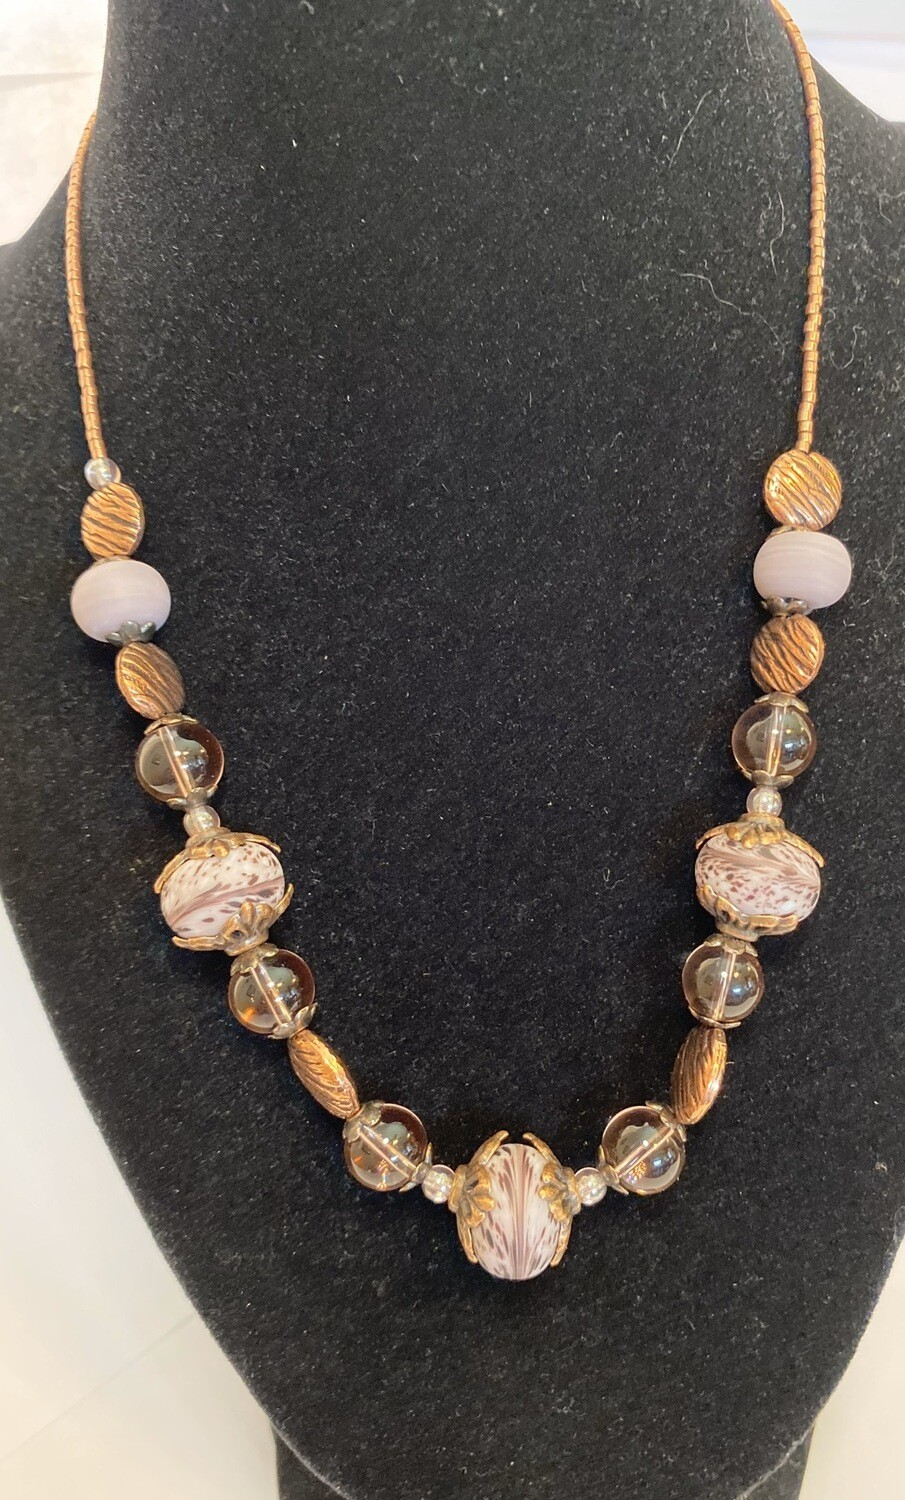 DK Mauve Hand Blown Glass Beads And Copper